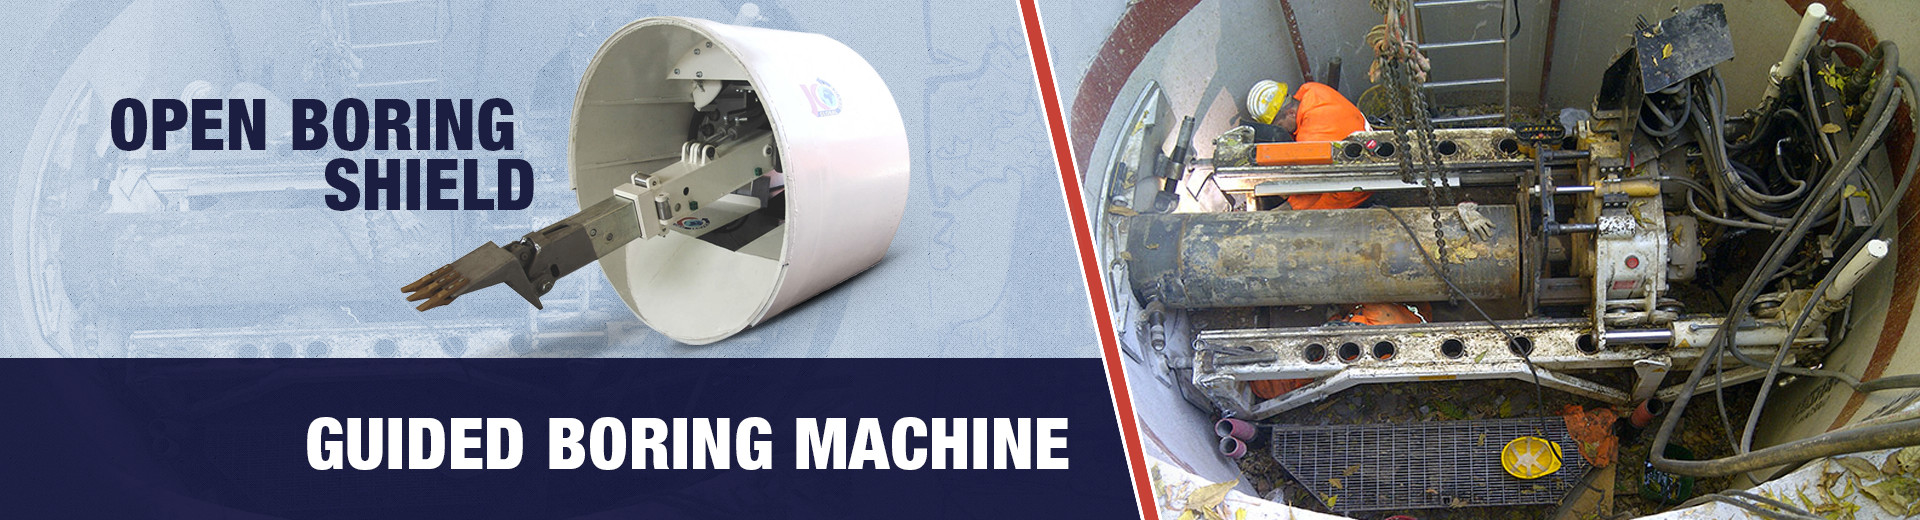 BORING SHIELD MACHINE